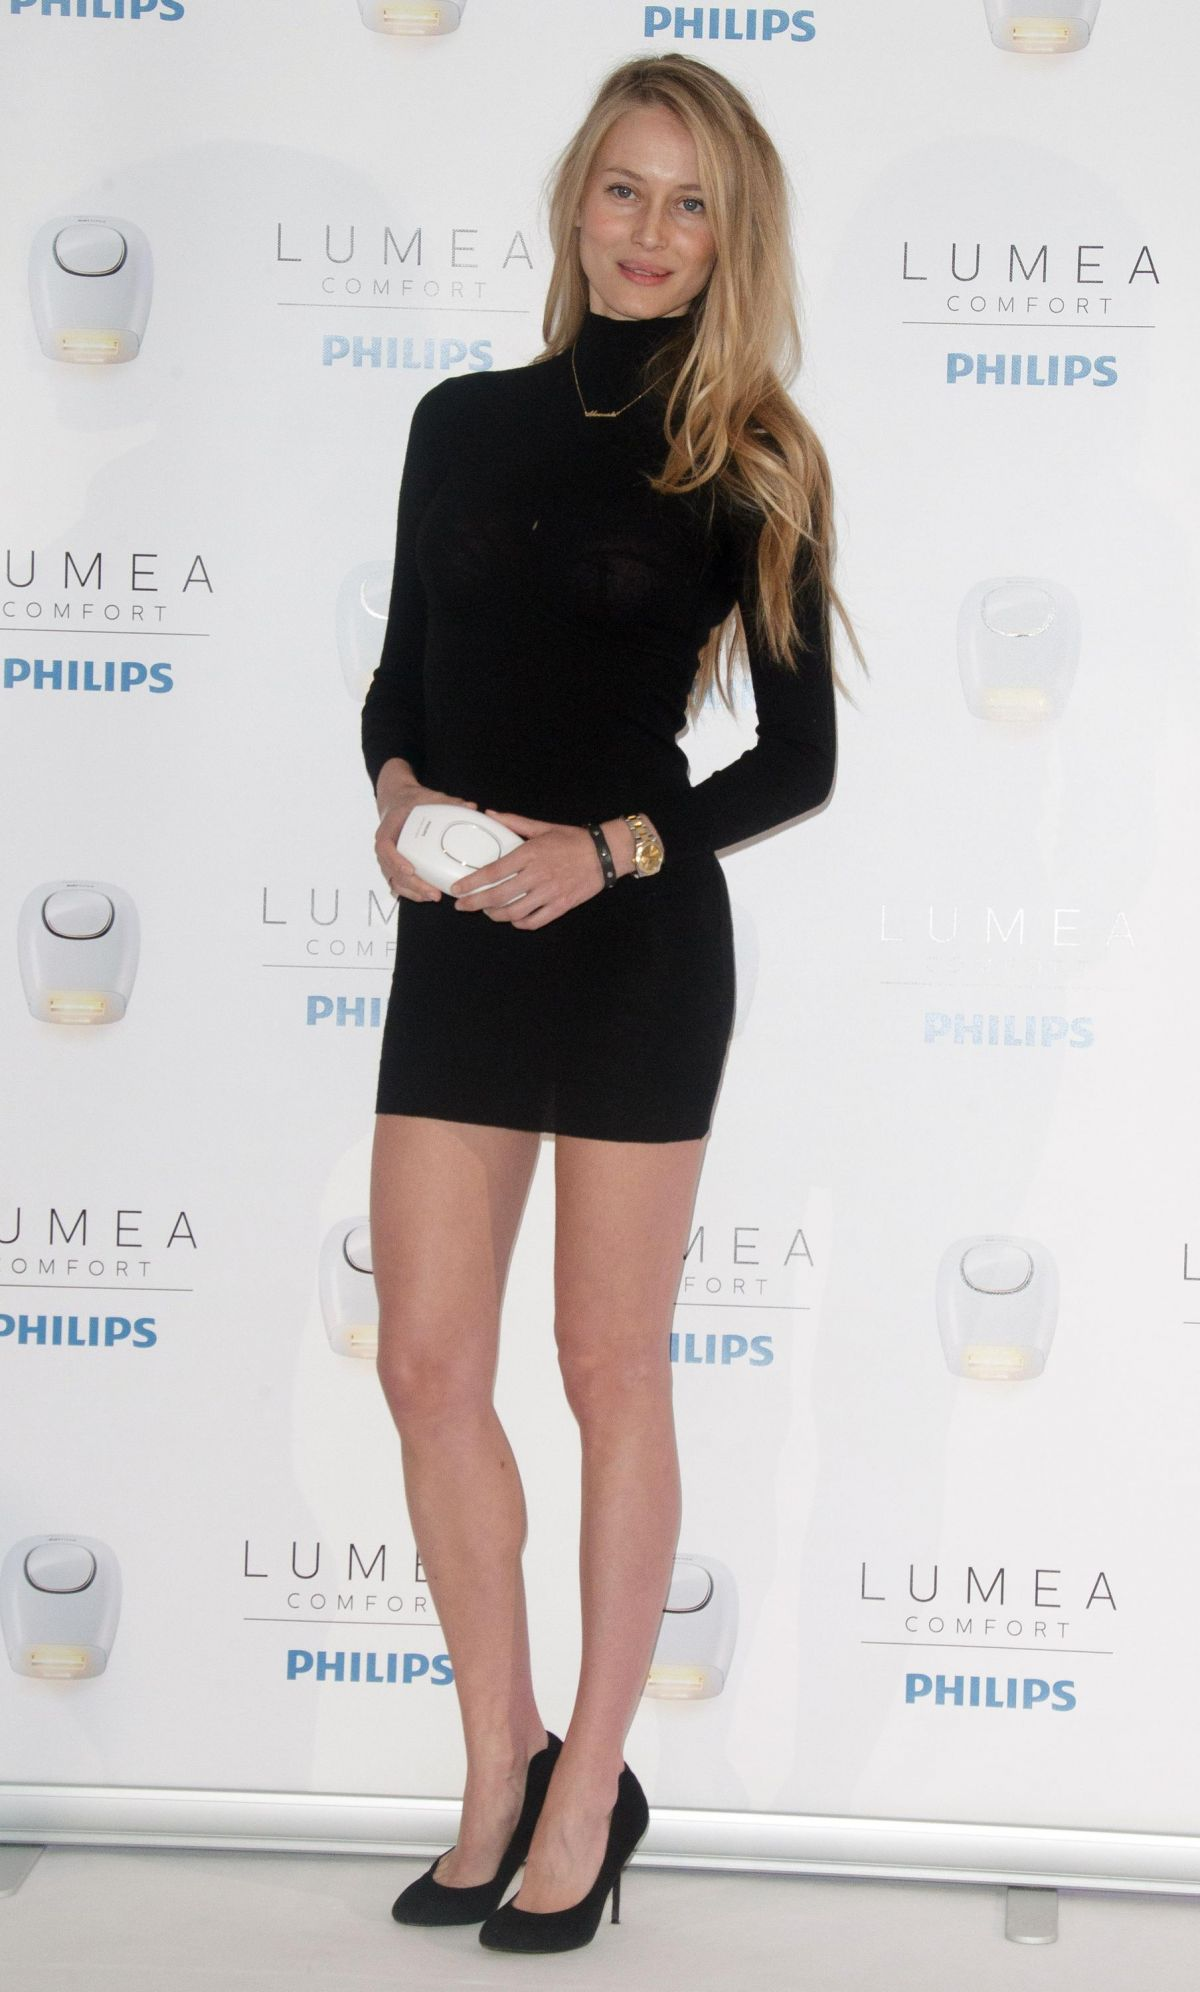 VANESA LORENZO at Philips Lume Confort Event in Madrid